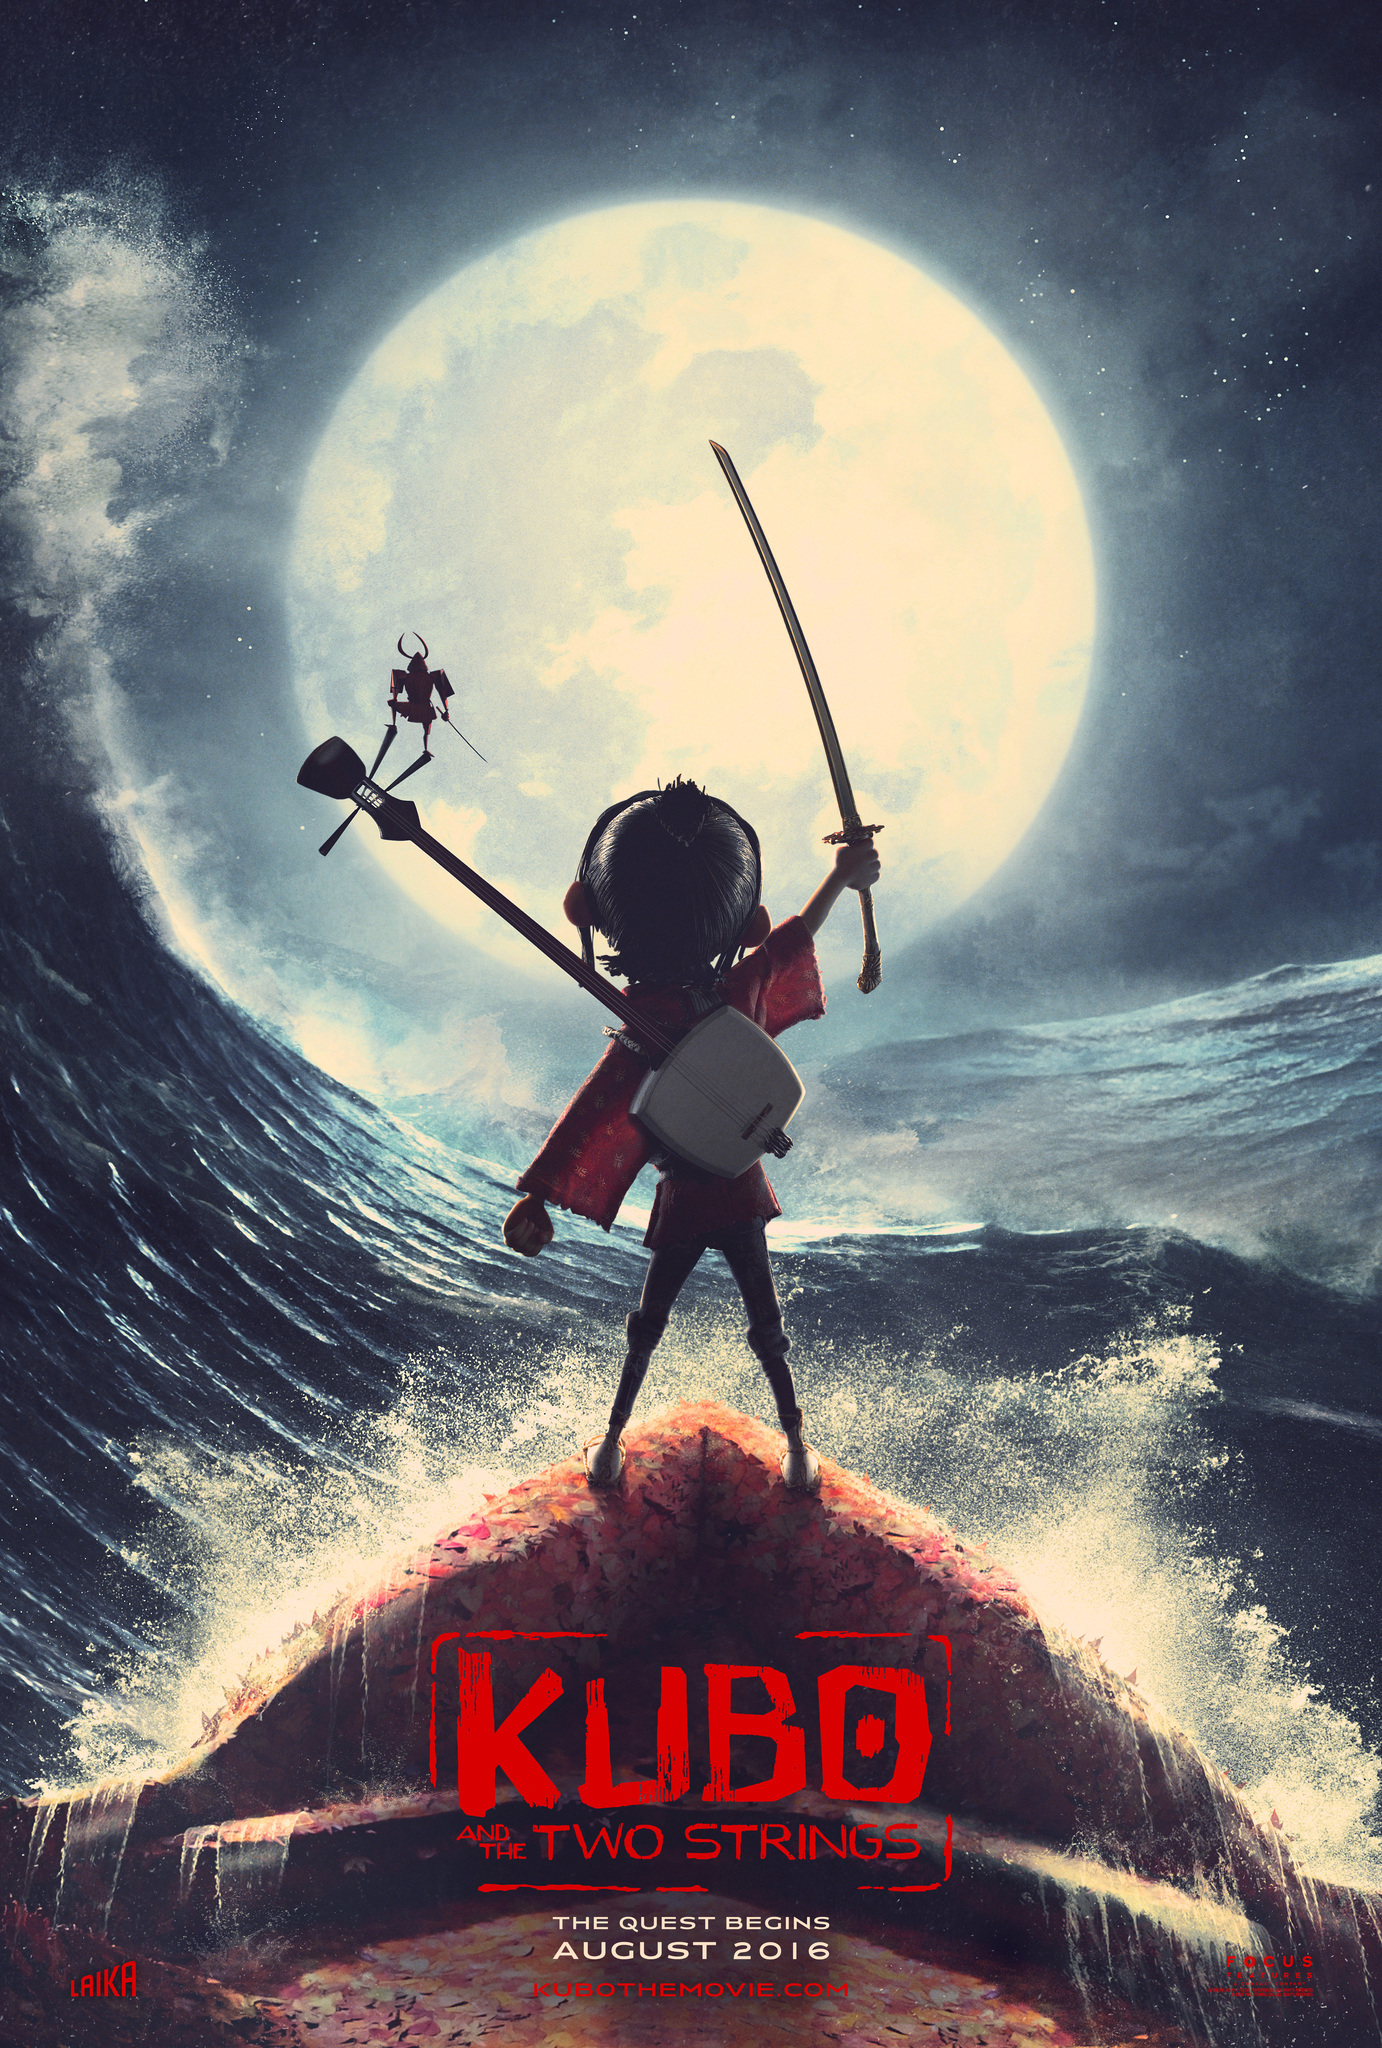 Art Parkinson in Kubo and the Two Strings (2016)